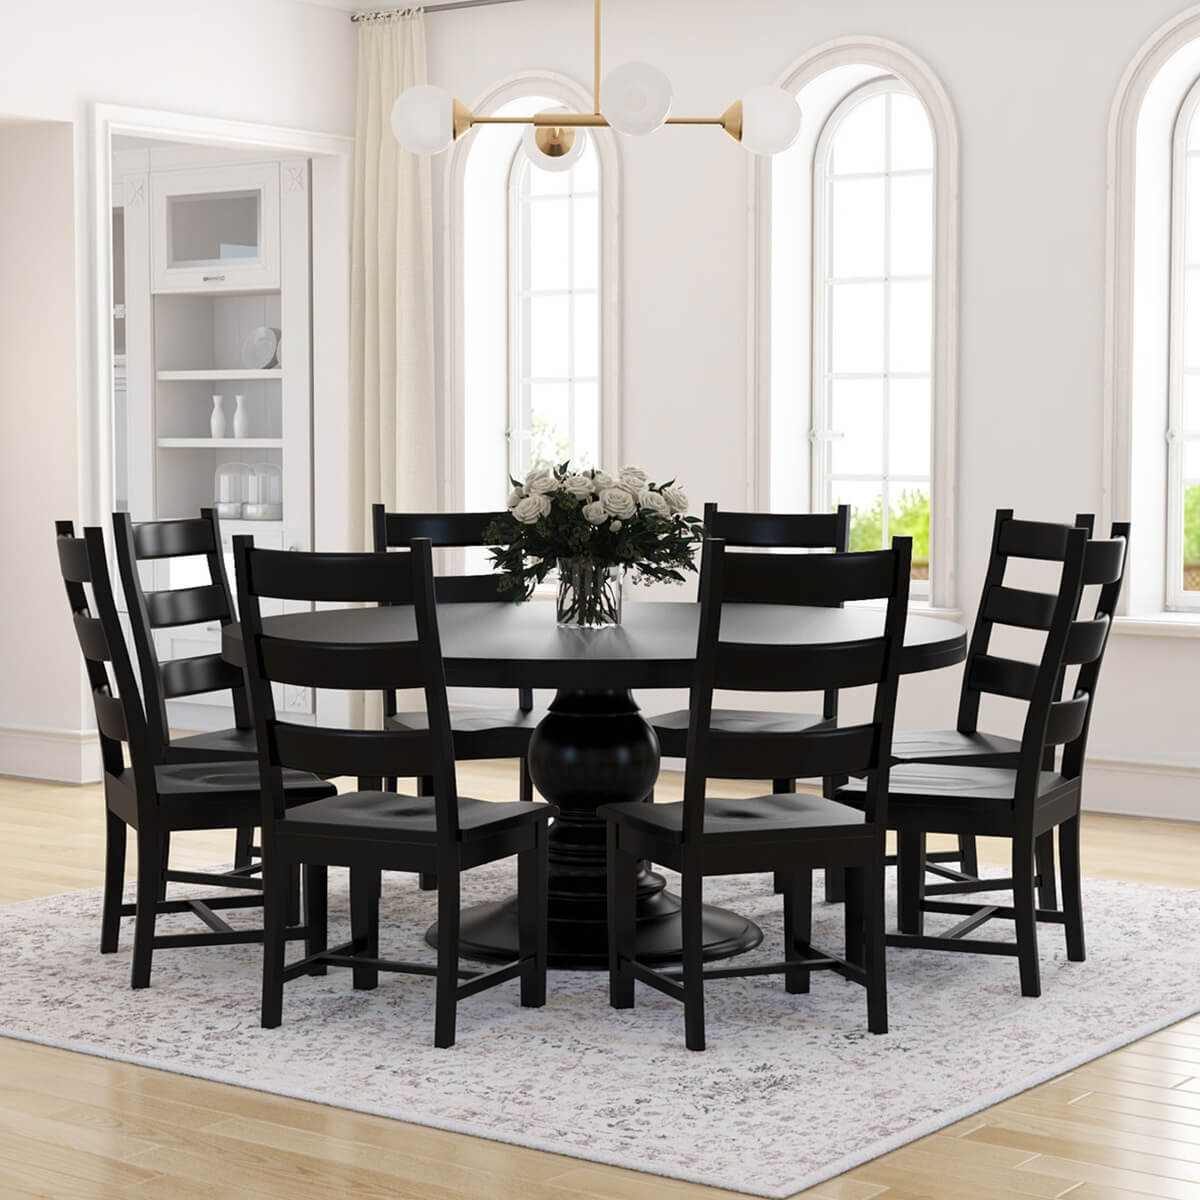 Nottingham rustic solid wood black round dining room table set for Solid wood round tables dining